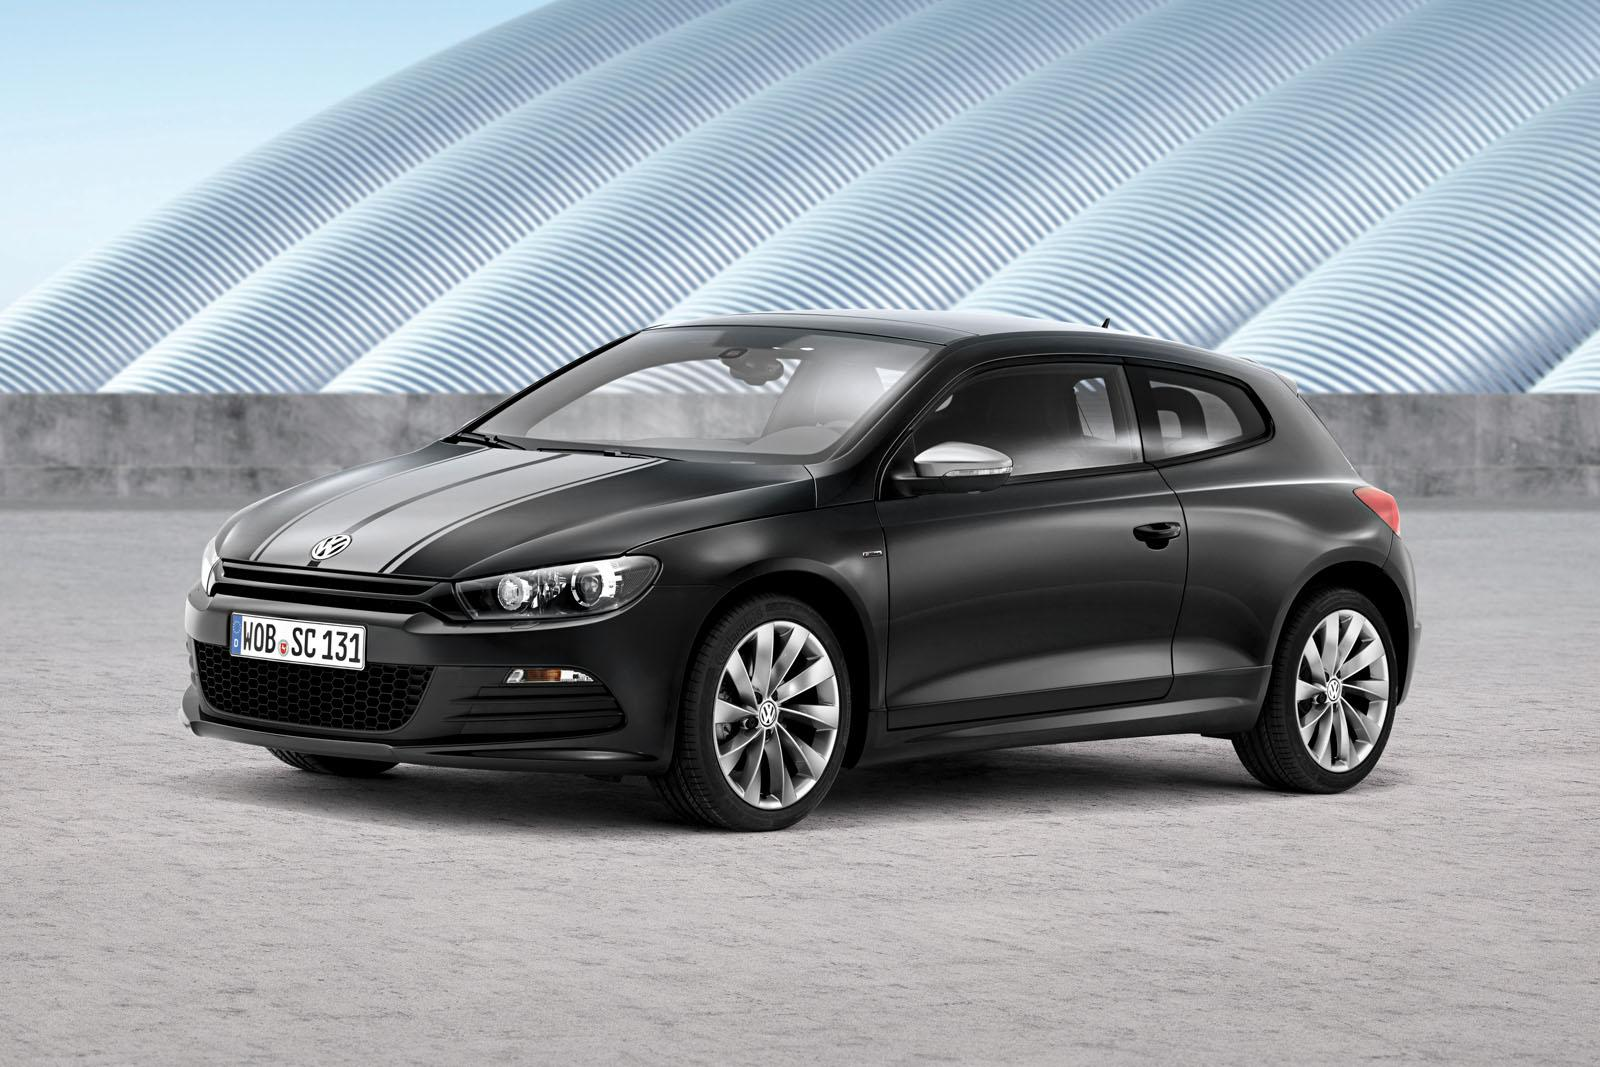 2013-Volkswagen-Scirocco-Million-Edition-hd-photo www.autosvit.net 1